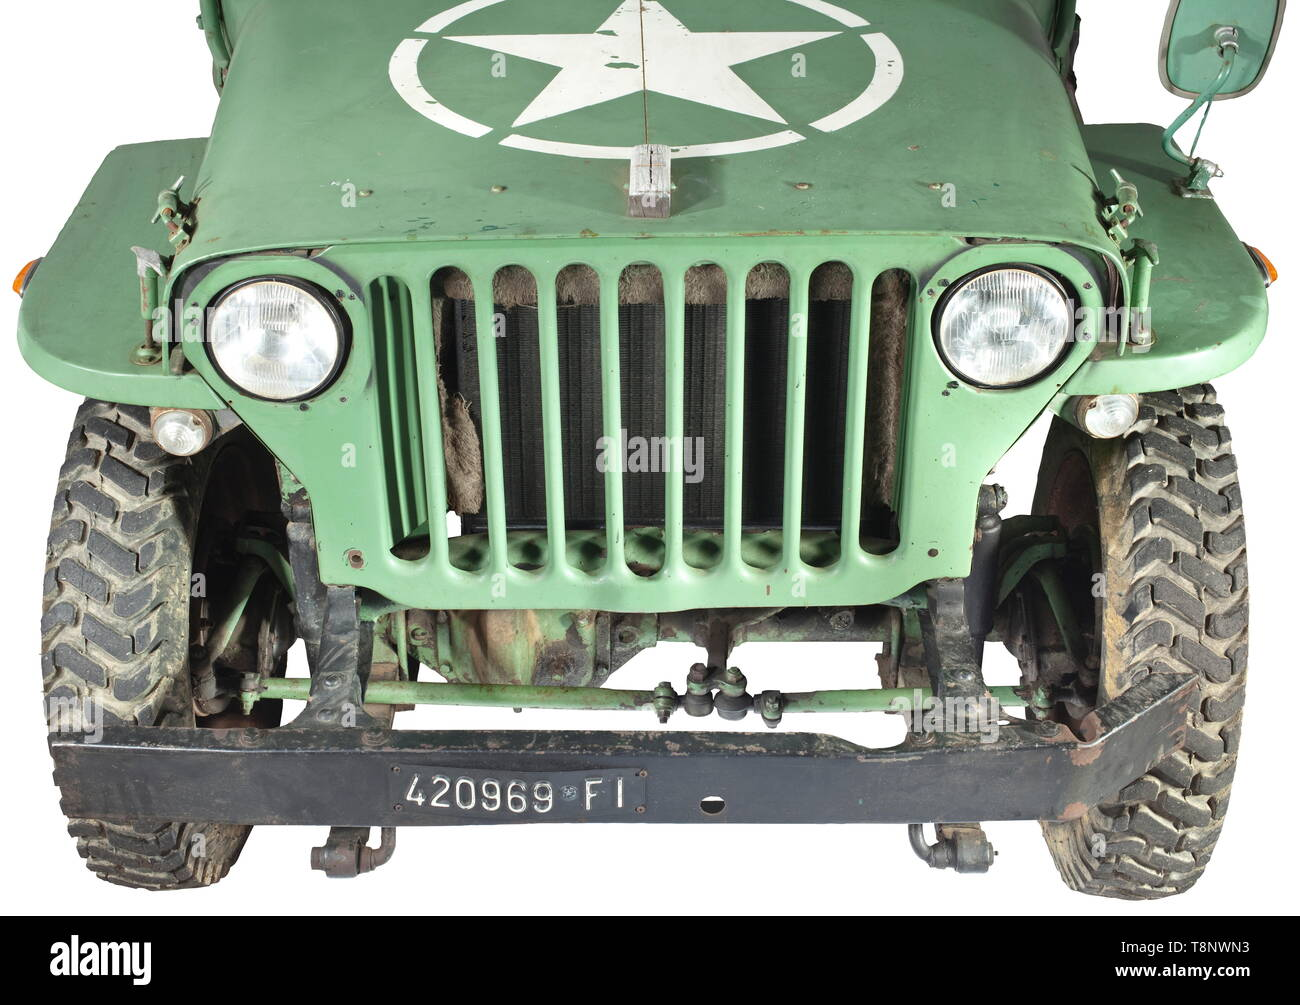 A jeep Willys MB Estimated year of production: 1945. Roadworthy. Chassis number covered by underbody protection. Original chassis: Main frame not corroded, welded or bent, original drive train (universal joints in good order). Engine (approx. 50 HP) original as well as air filter, gearbox (leaking), front and rear axle. Solex carburettor. 16-inch rims (post war production), tyres renewed. Undented, body in good condition. Doors and stick windows replaced. Bonnet, mud guards and grill can easily be put back into their original condition. New varni, Additional-Rights-Clearance-Info-Not-Available - Stock Image